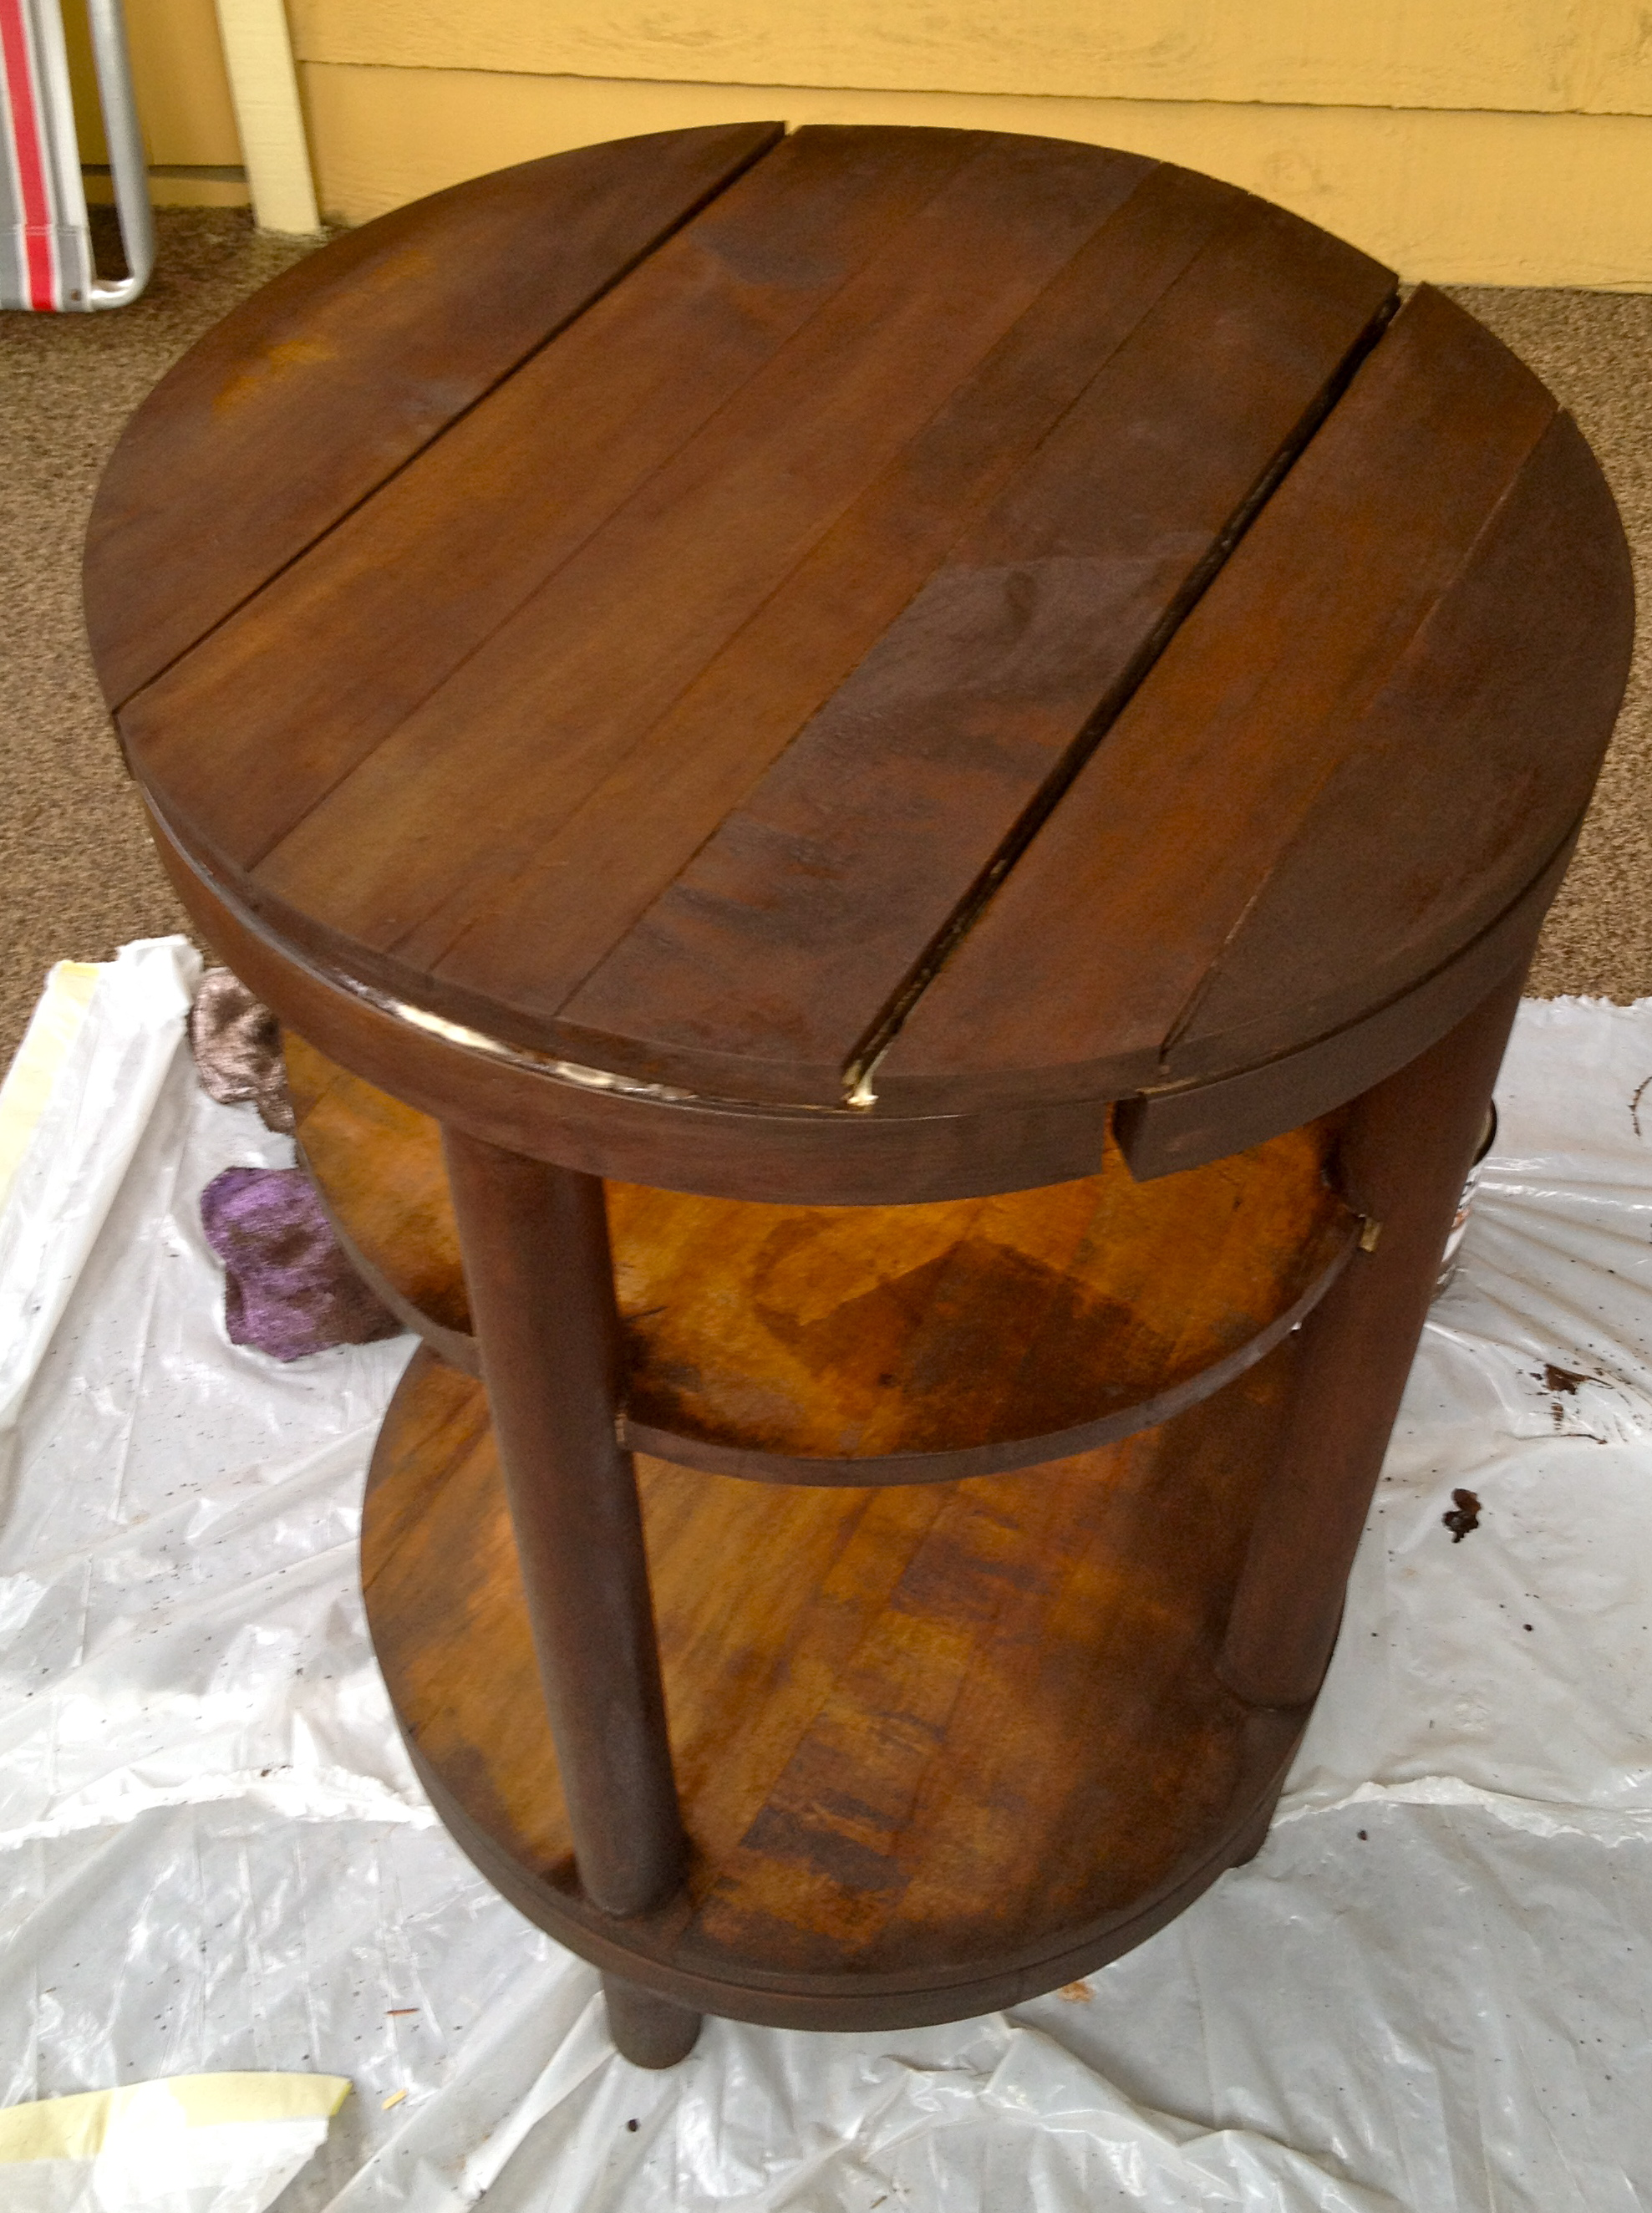 Staining a Table - Charleston Crafted